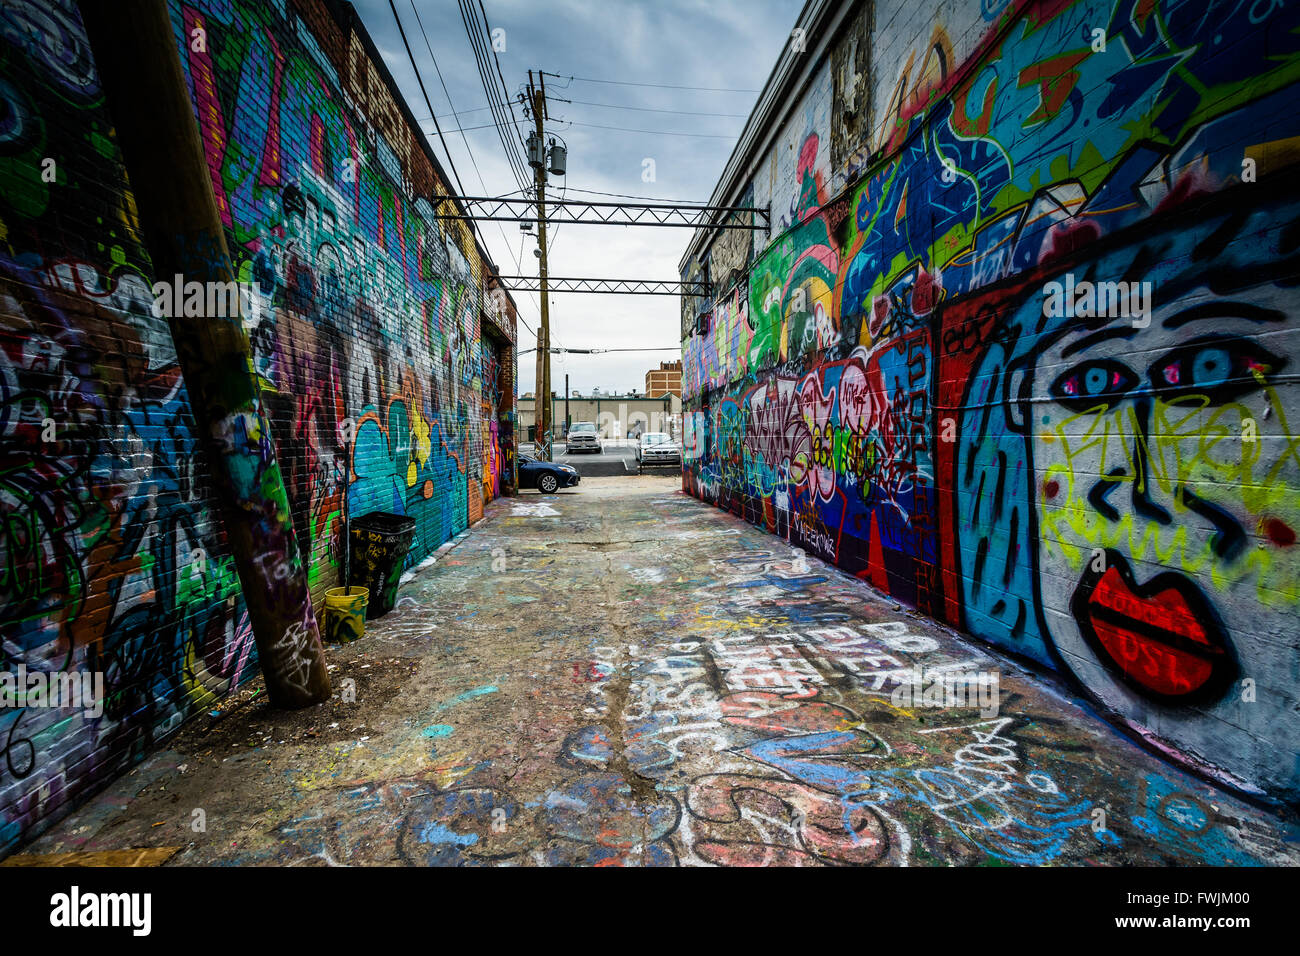 Graffiti wall baltimore - Graffiti Alley In The Station North District Of Baltimore Maryland Stock Image